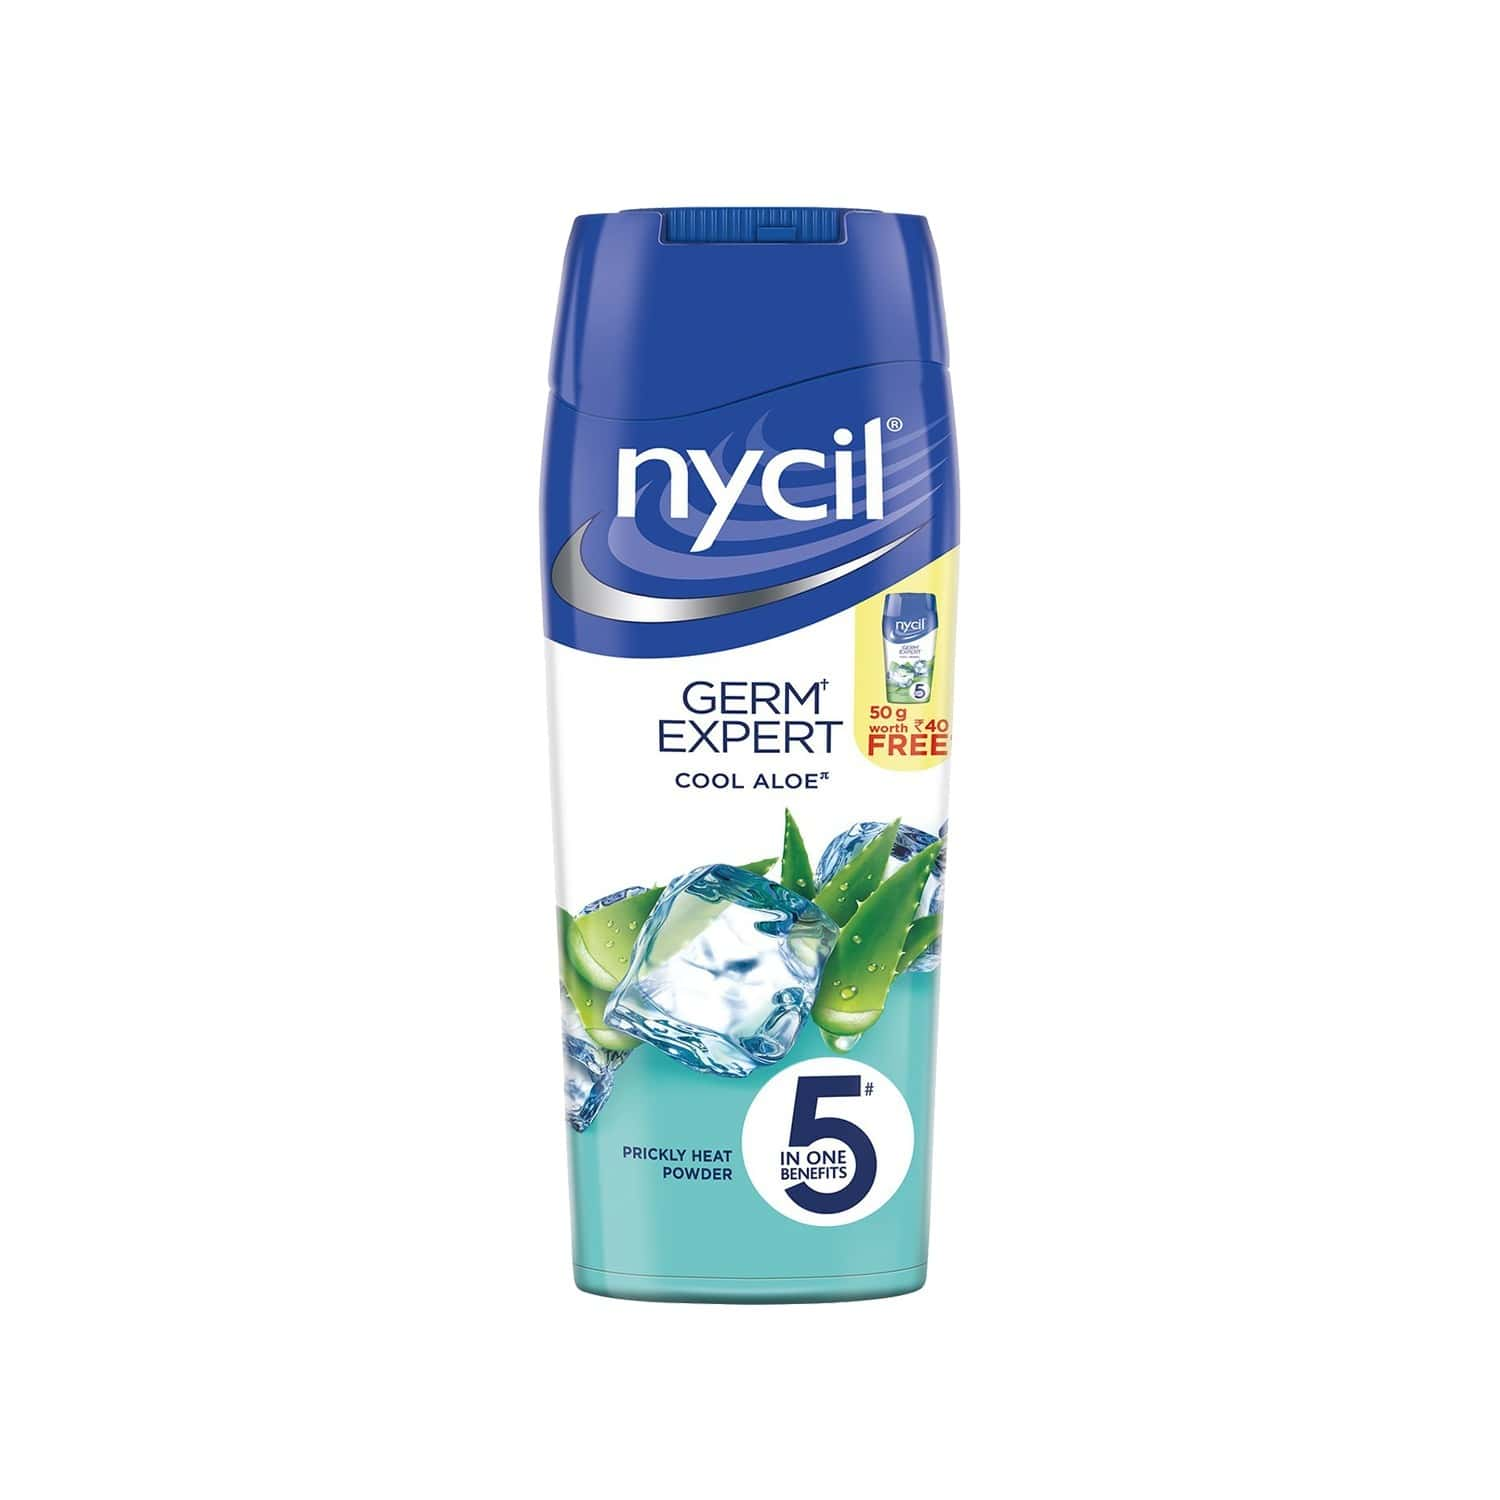 Nycil Cool Aloe Prickly Heat Powder Bottle Of 150 G (cool Herbal 50g Free)